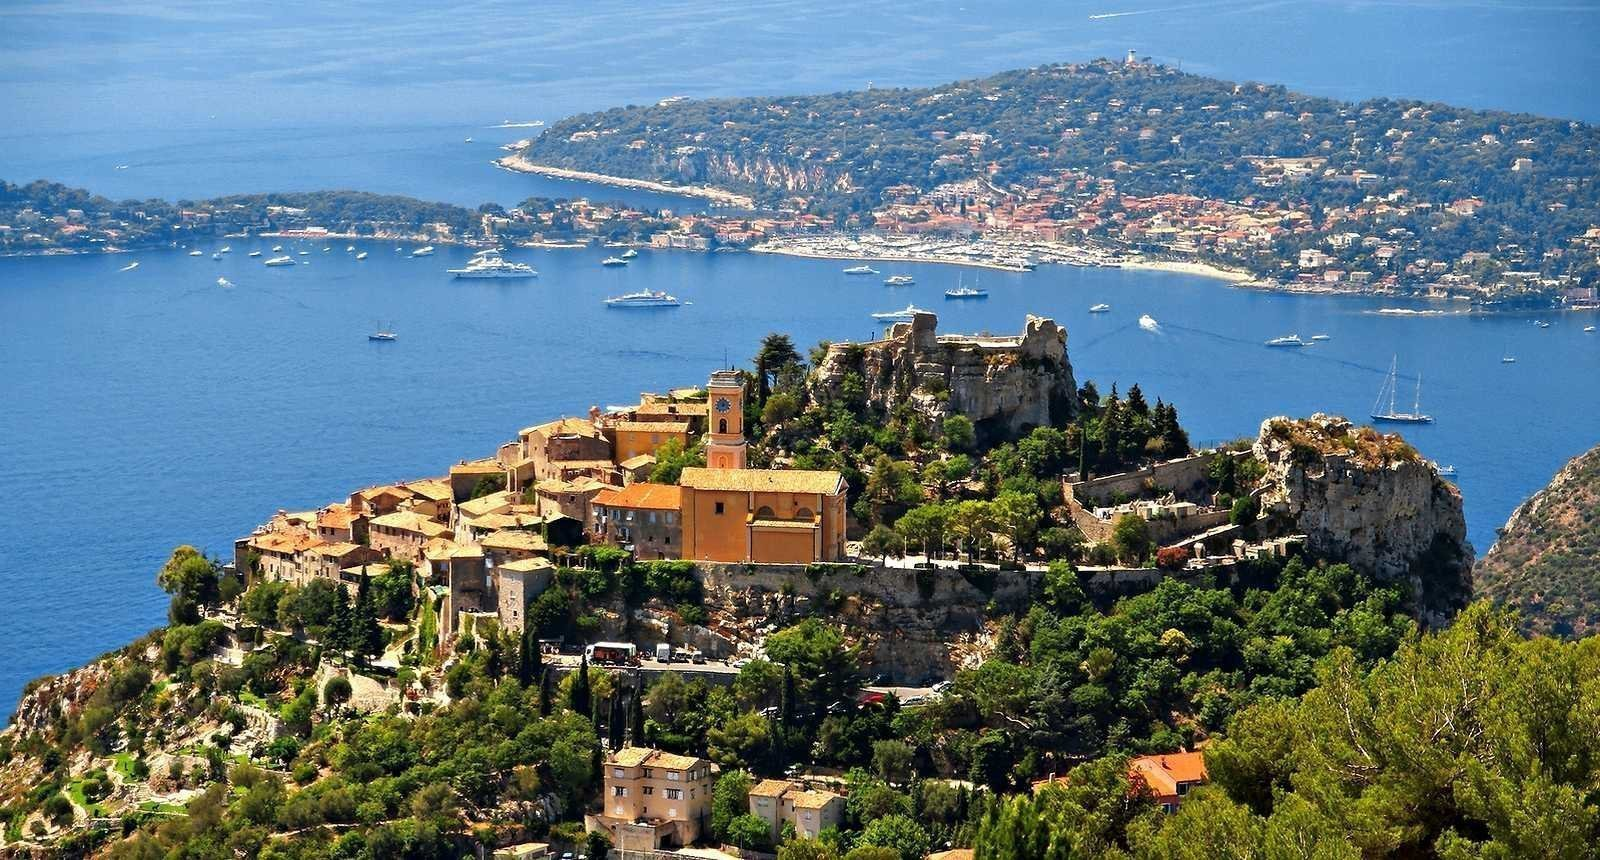 EZE - Exceptional 2 bed Apartment - Sea view - Swimming pool